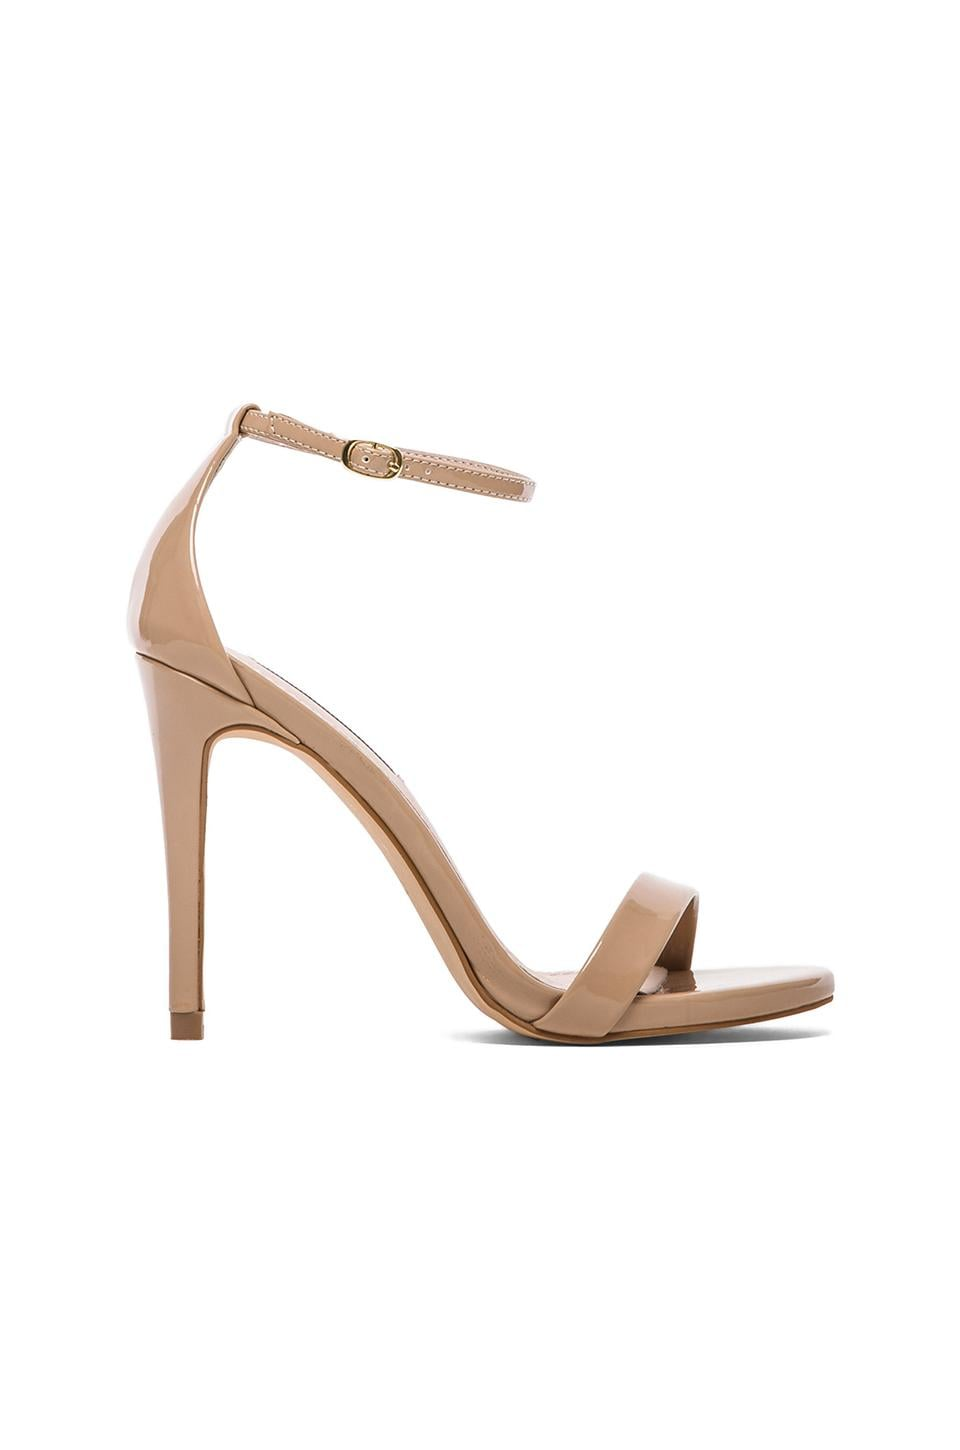 Steve Madden Stecy Heel in Blush